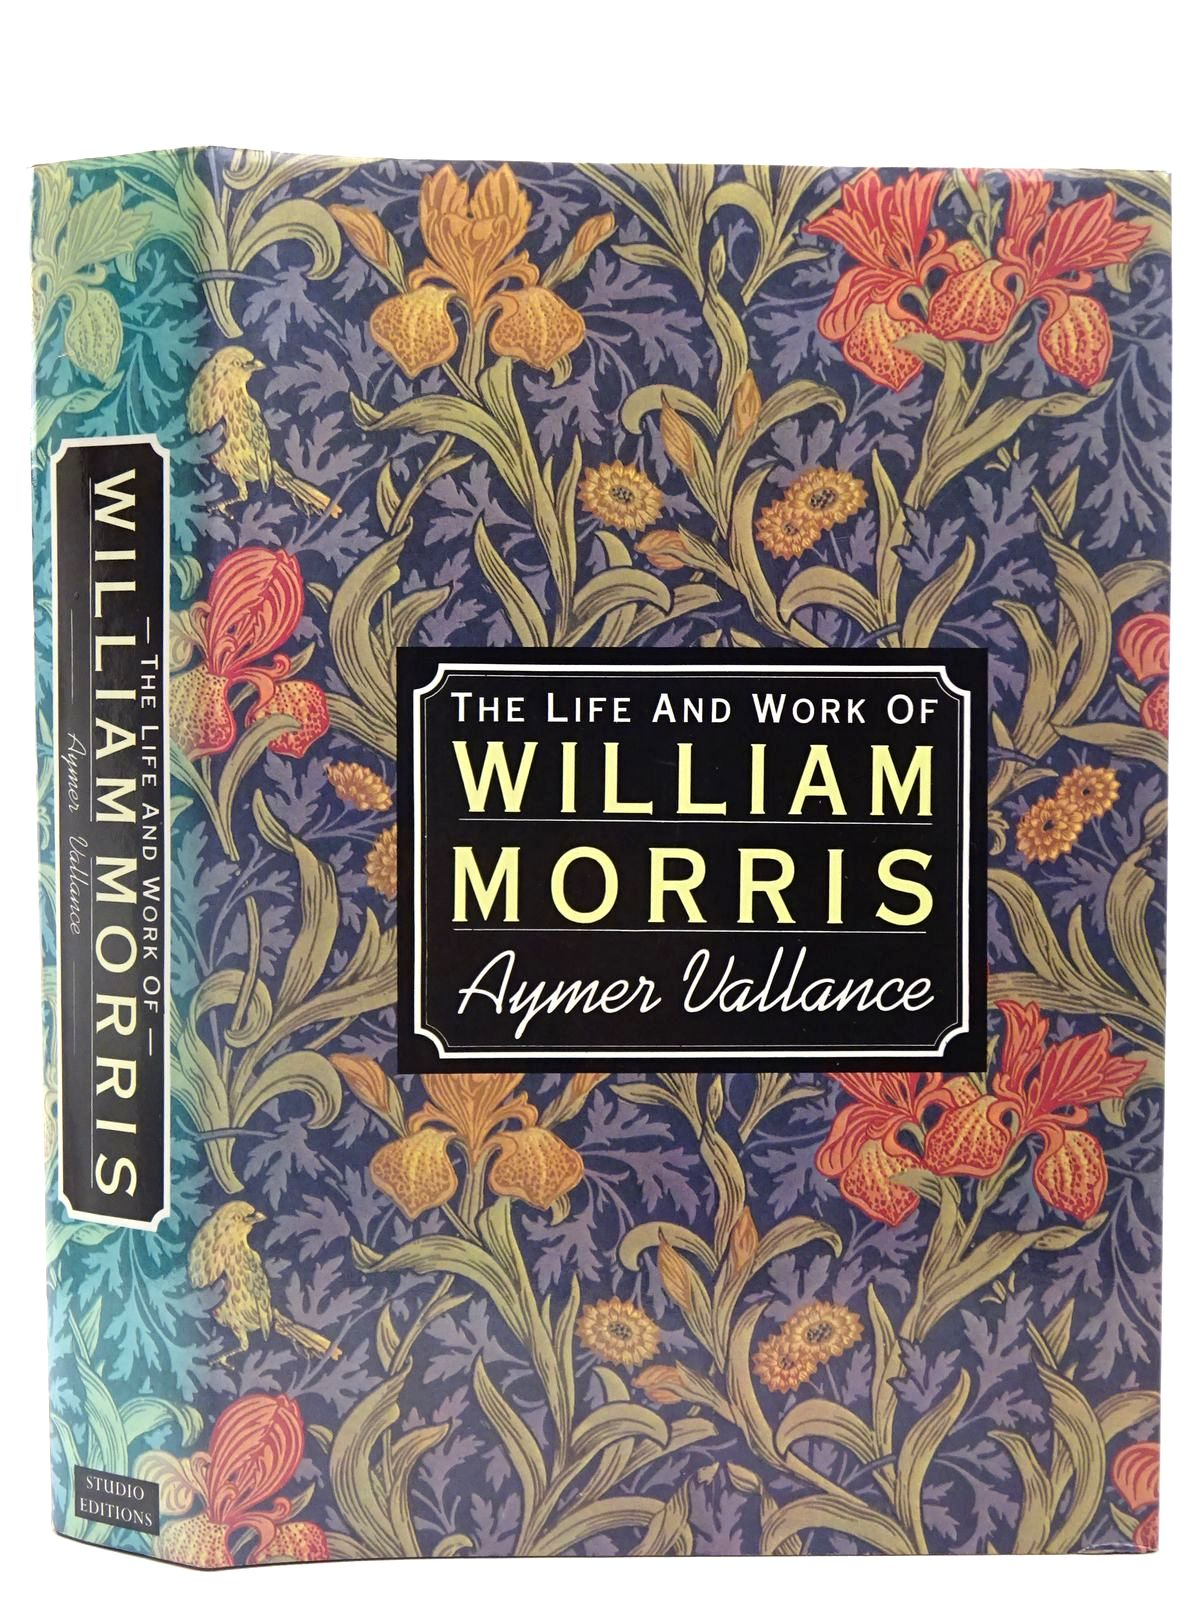 Photo of WILLIAM MORRIS HIS ART HIS WRITINGS AND HIS PUBLIC LIFE written by Vallance, Aymer published by Studio Editions (STOCK CODE: 2127922)  for sale by Stella & Rose's Books